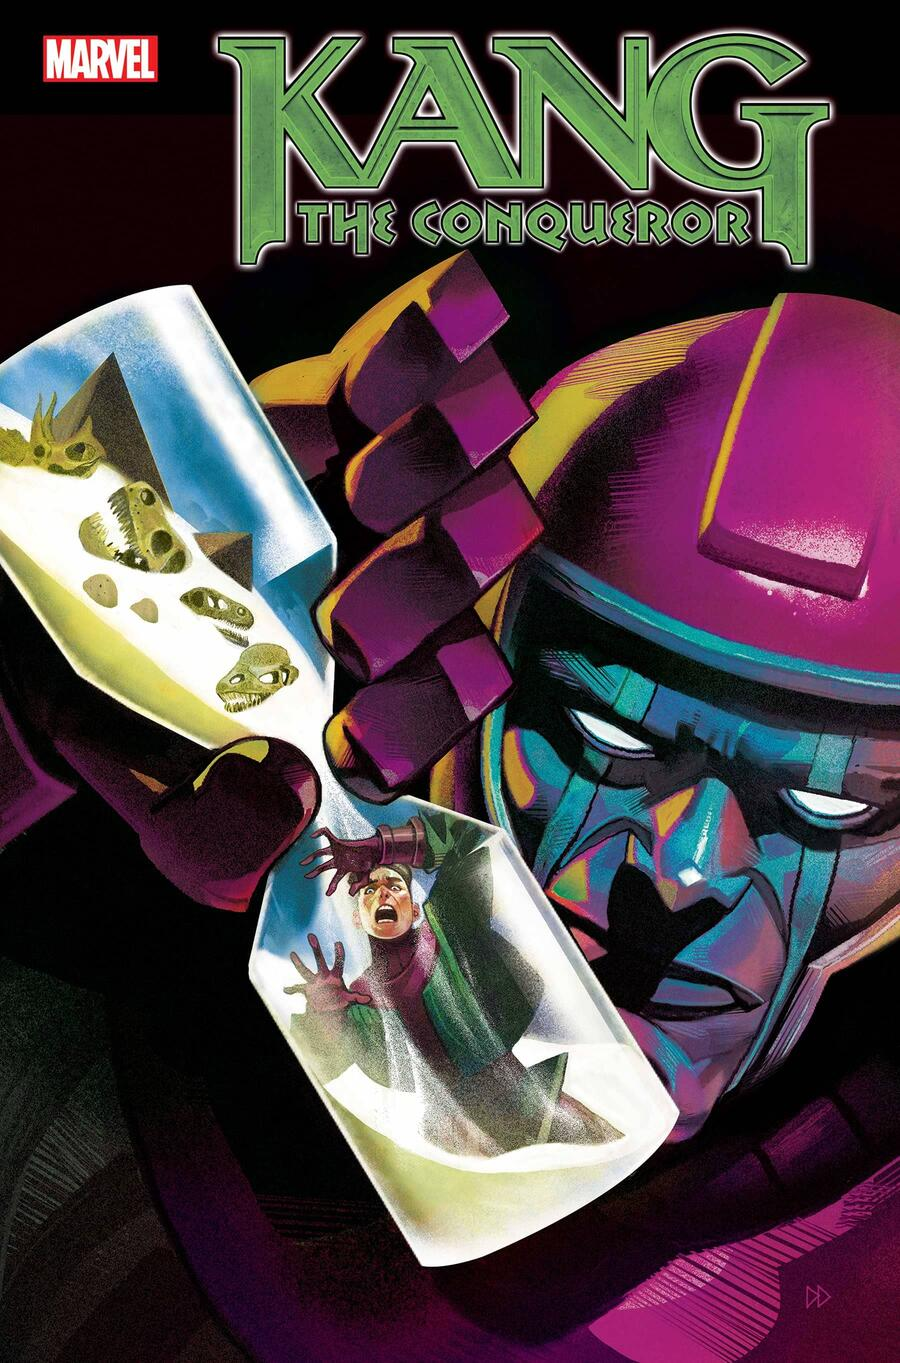 KANG THE CONQUEROR#1 cover by Mike Del Mundo